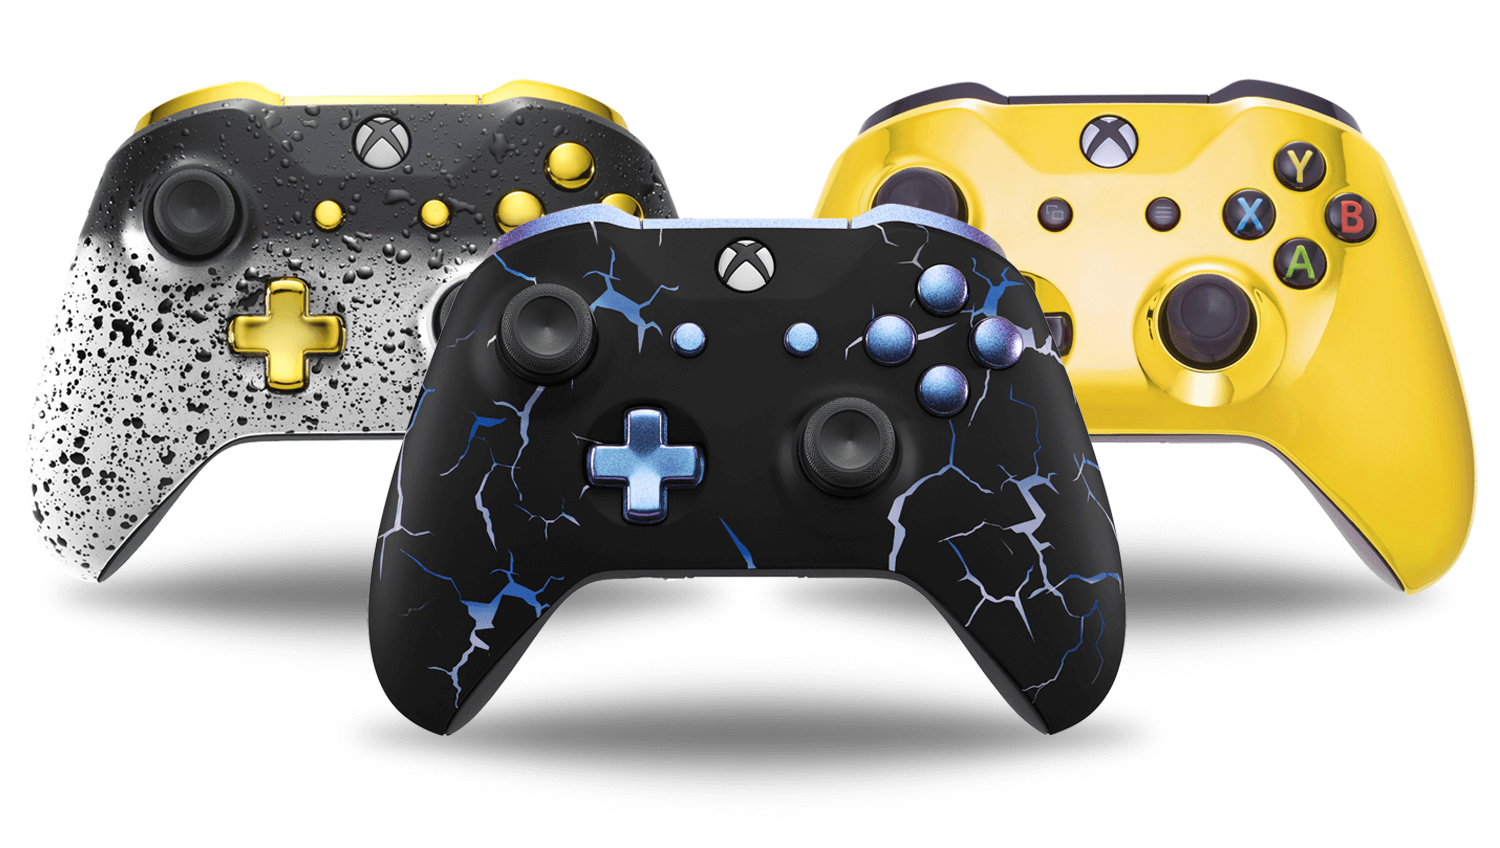 Custom xbox one controllers from Custom Controllers UK